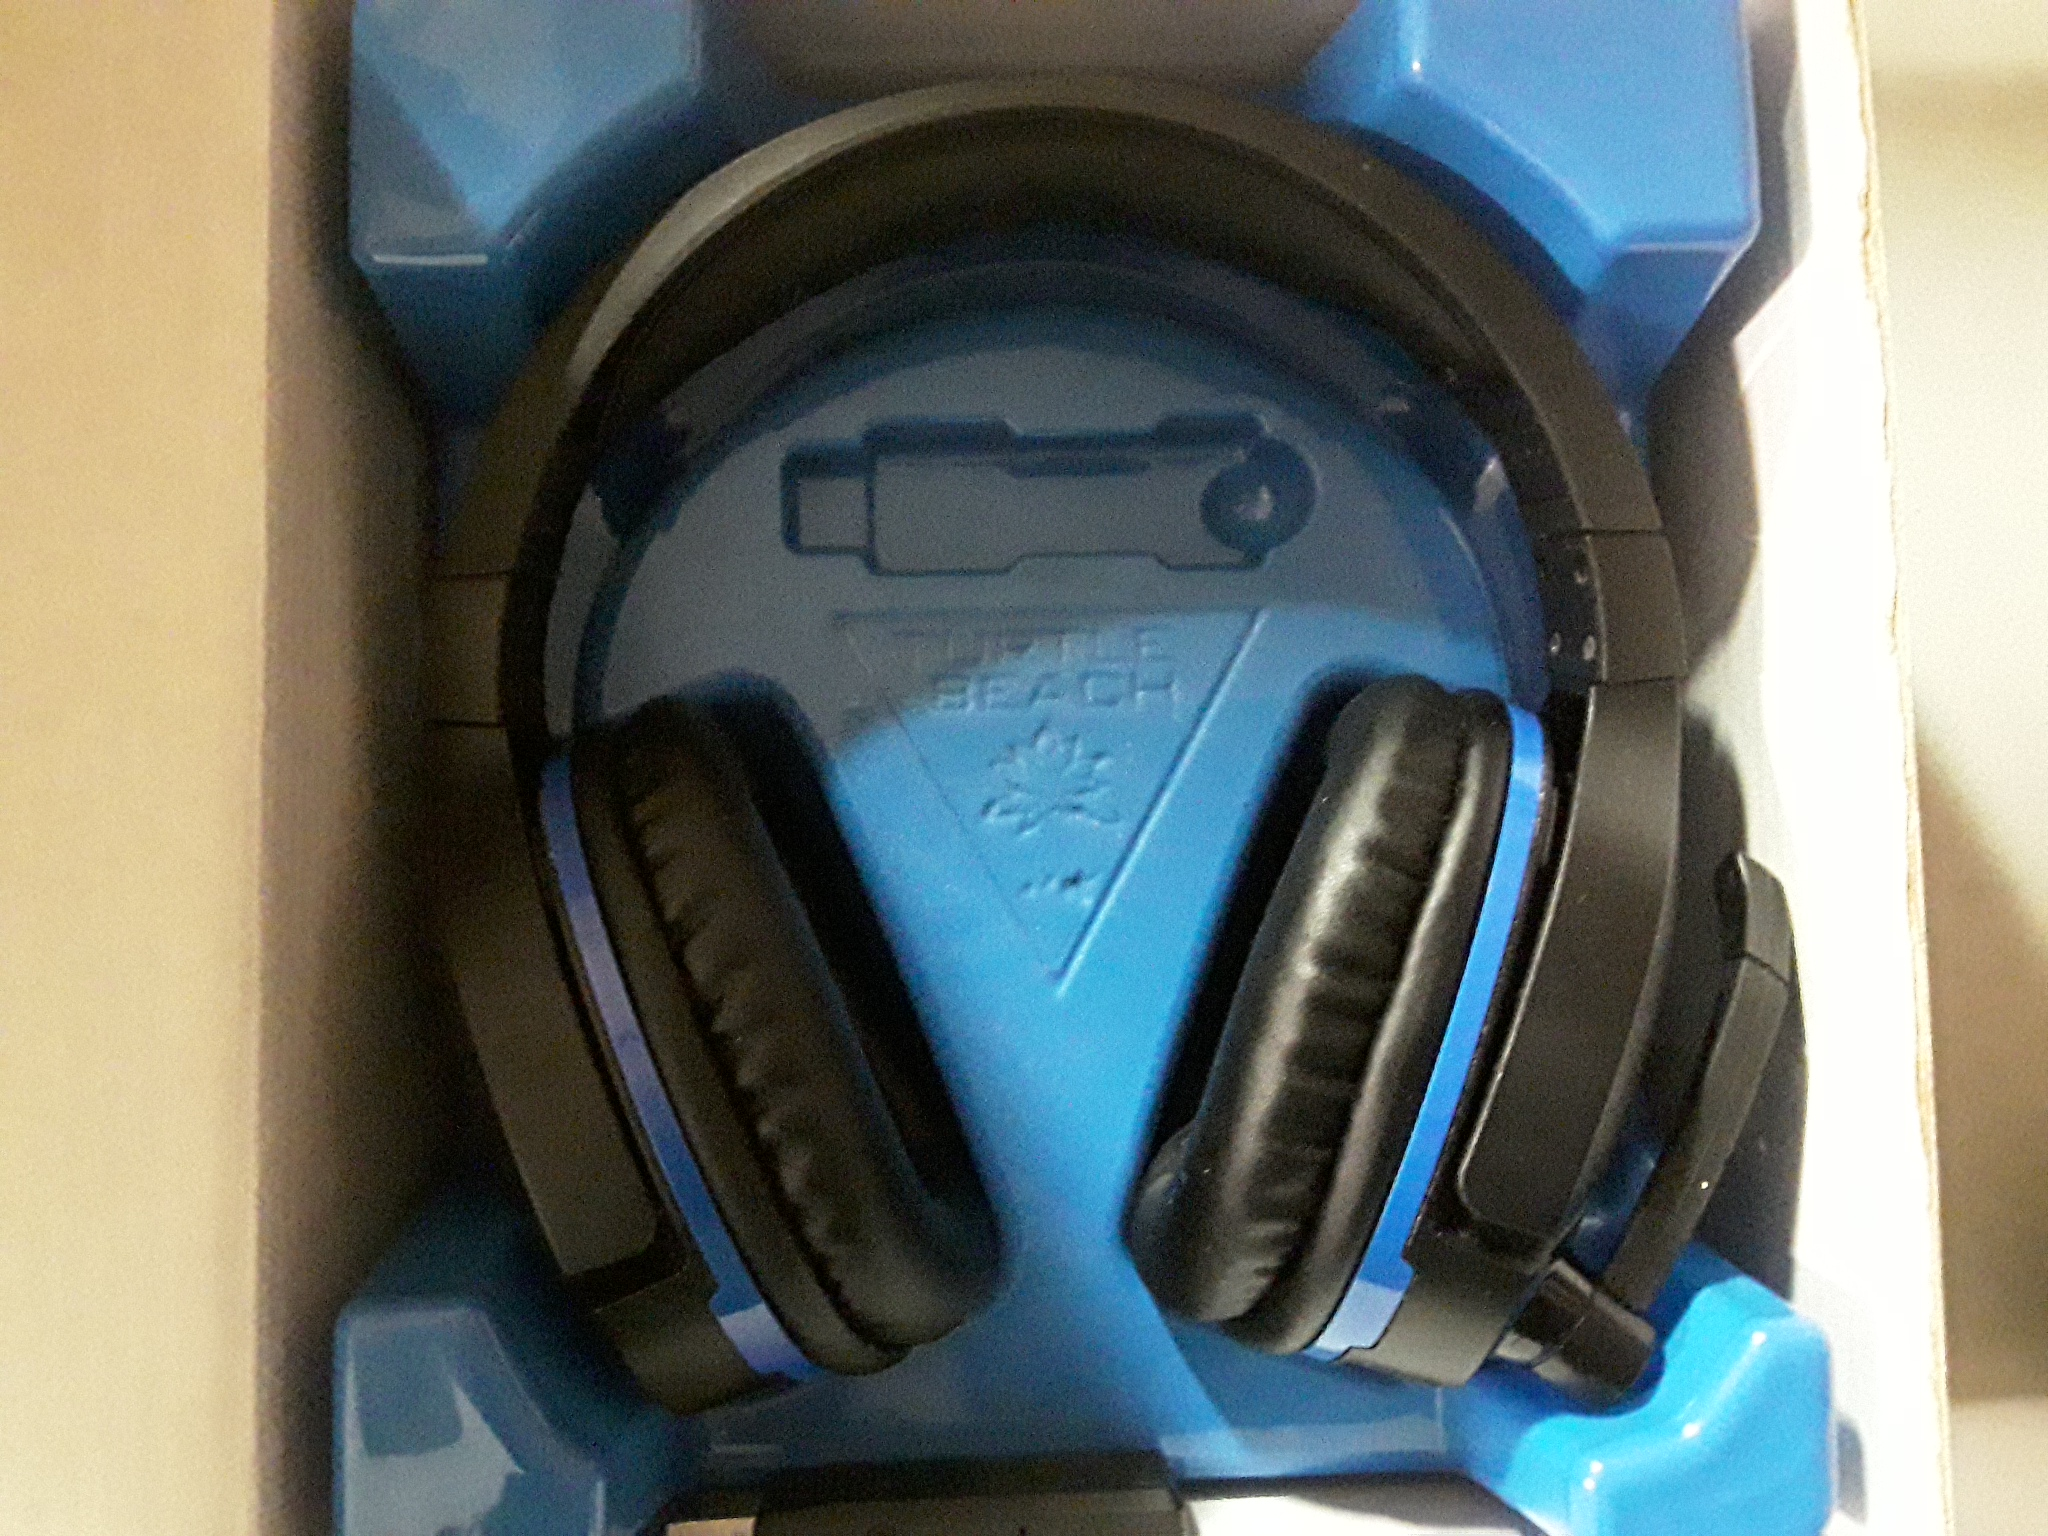 Lot 3270 Turtle Beach Stealth 700 Headset For Ps4